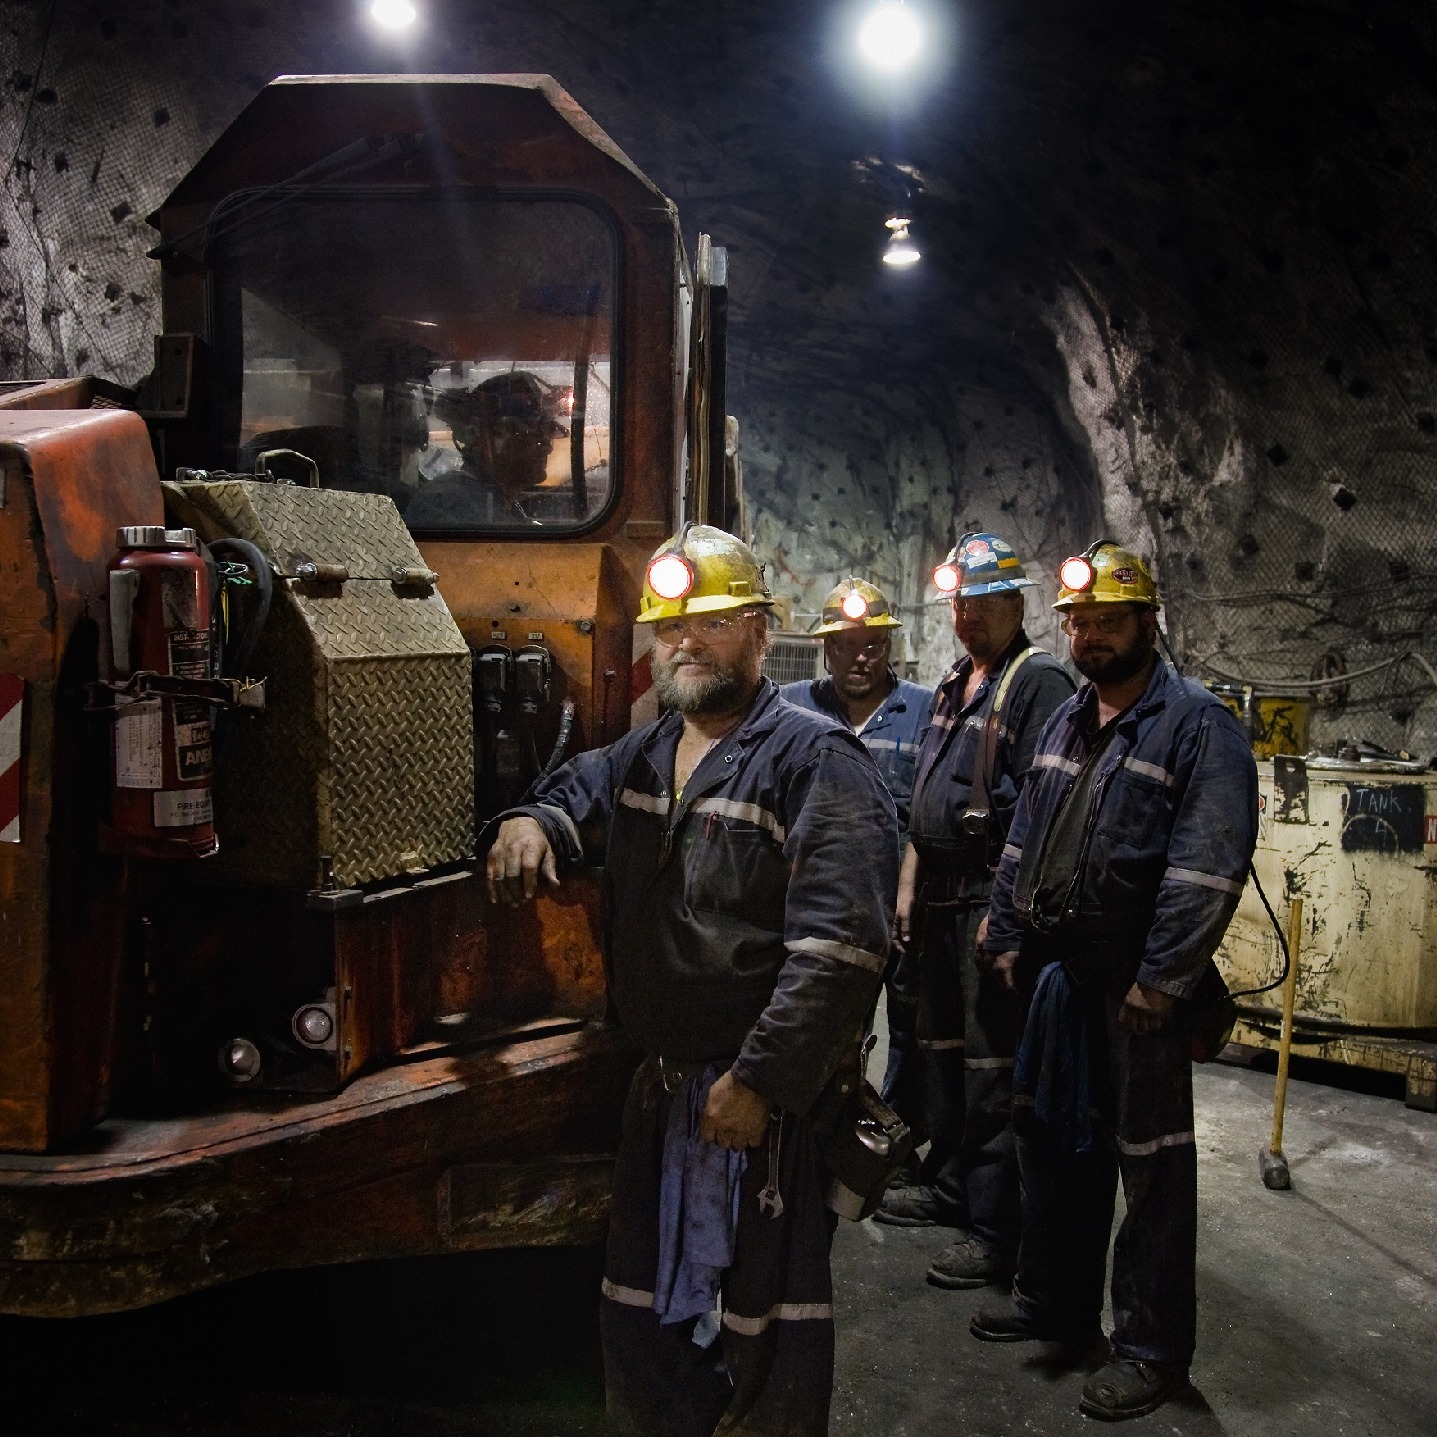 Seeking novel proposals for mining companies to manage tasks and inventory